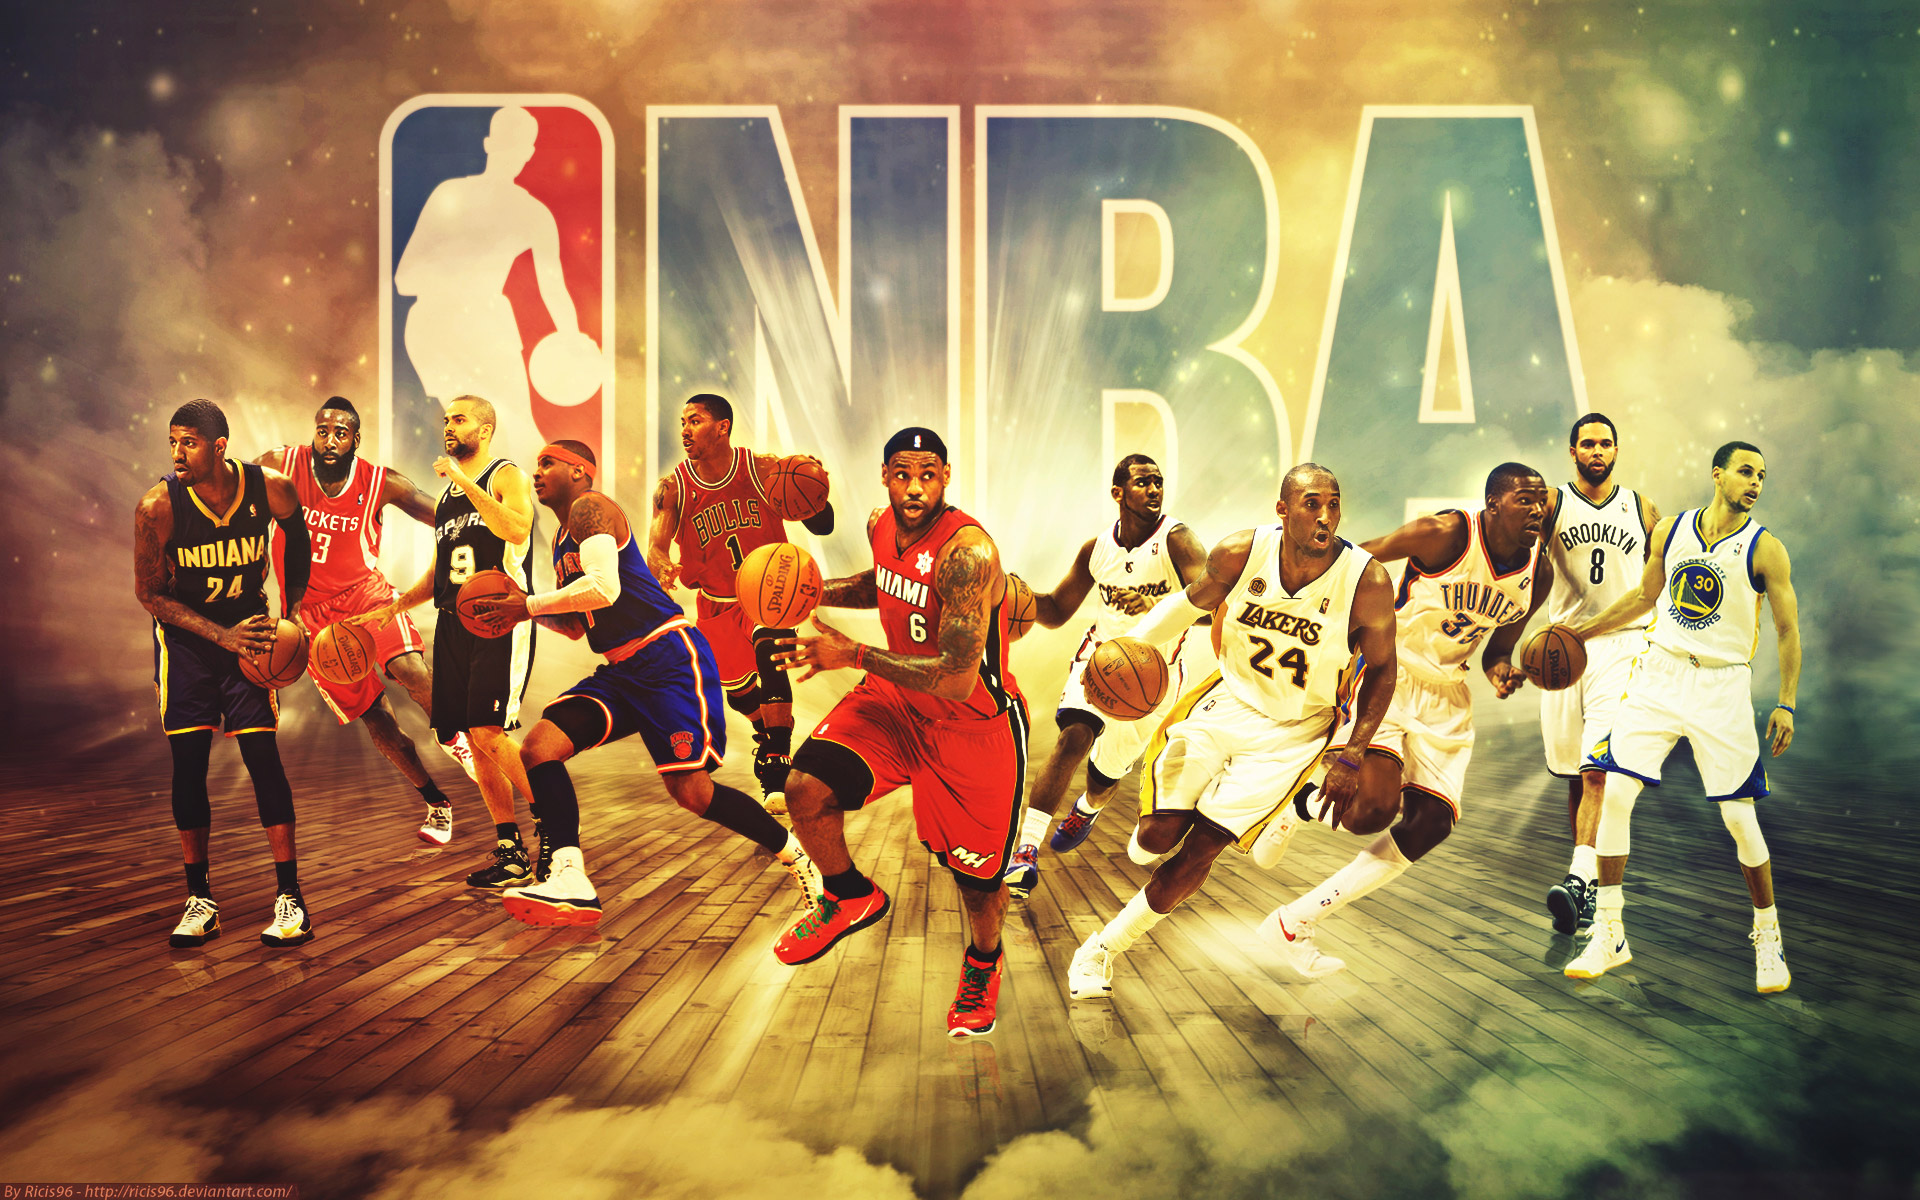 NBA Basketball Players Wallpaper